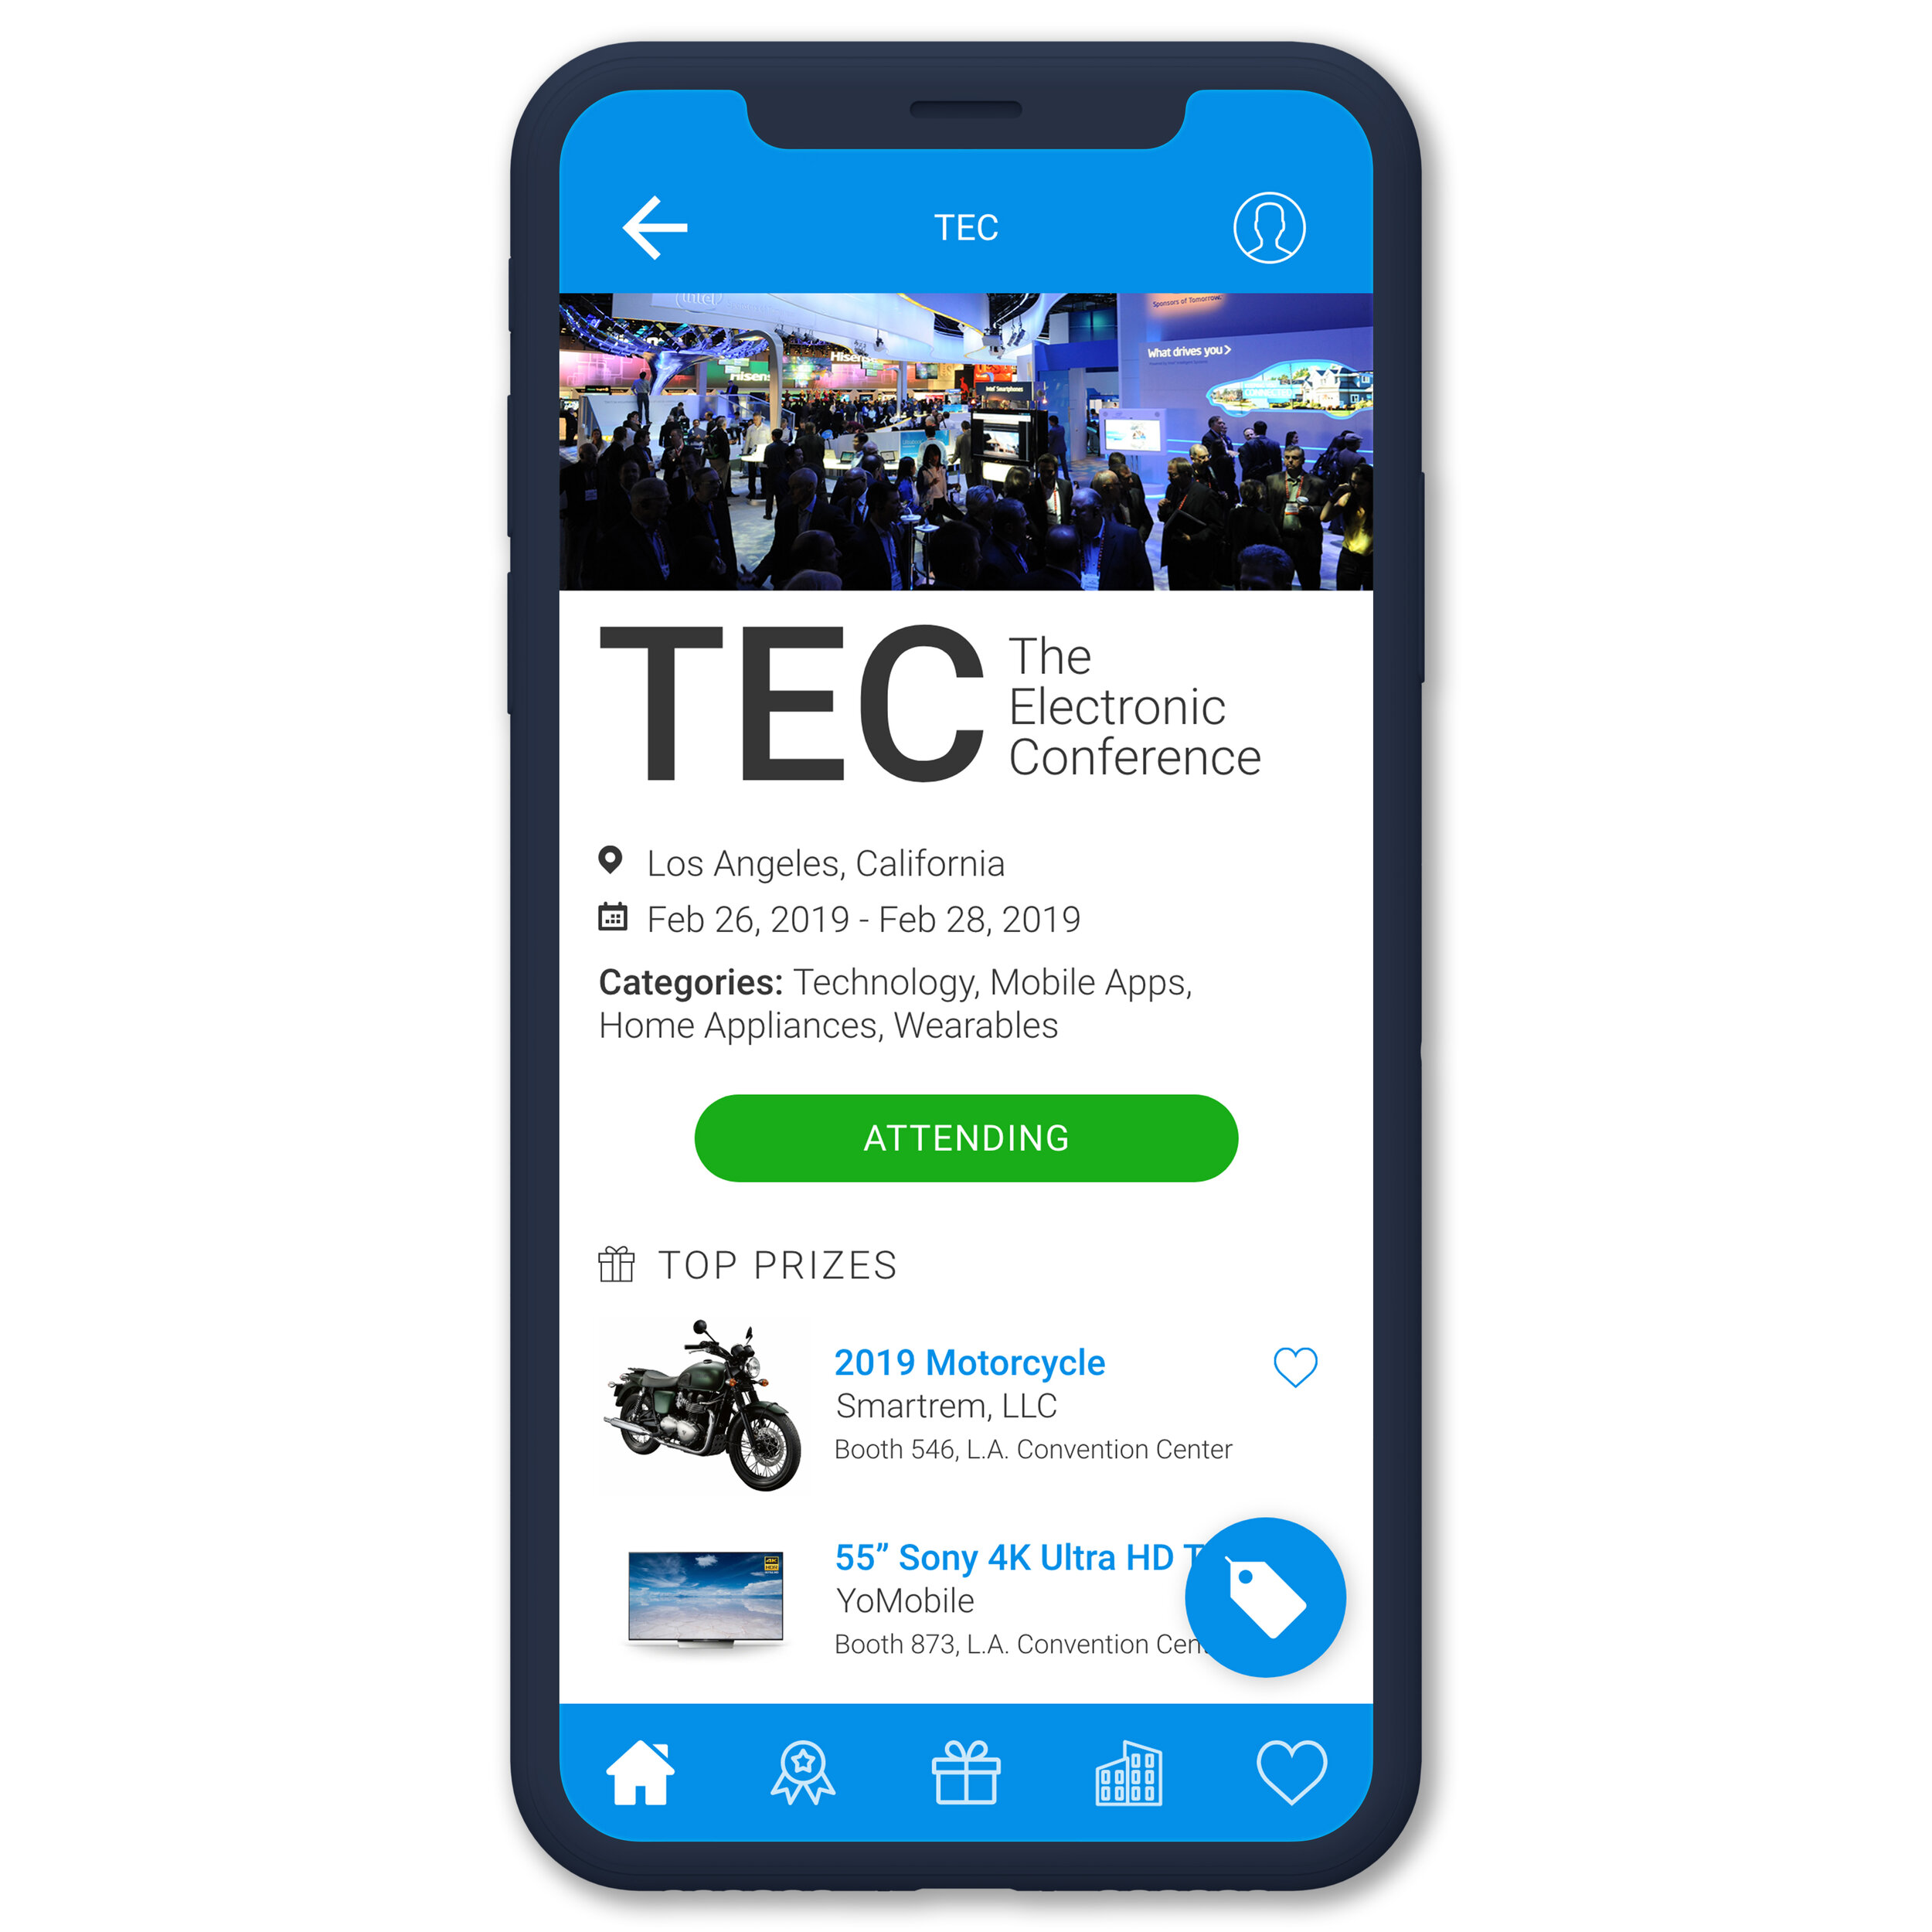 Follow UpcomingTrade Shows - Search through upcoming trade shows, and follow the ones that you plan on attending. Each show that you follow will be easily accessible in your account. Exhibitors offering giveaways will be featured in the 'Companies' section of the app. Check back prior to the event for new giveaway and exhibitor additions.